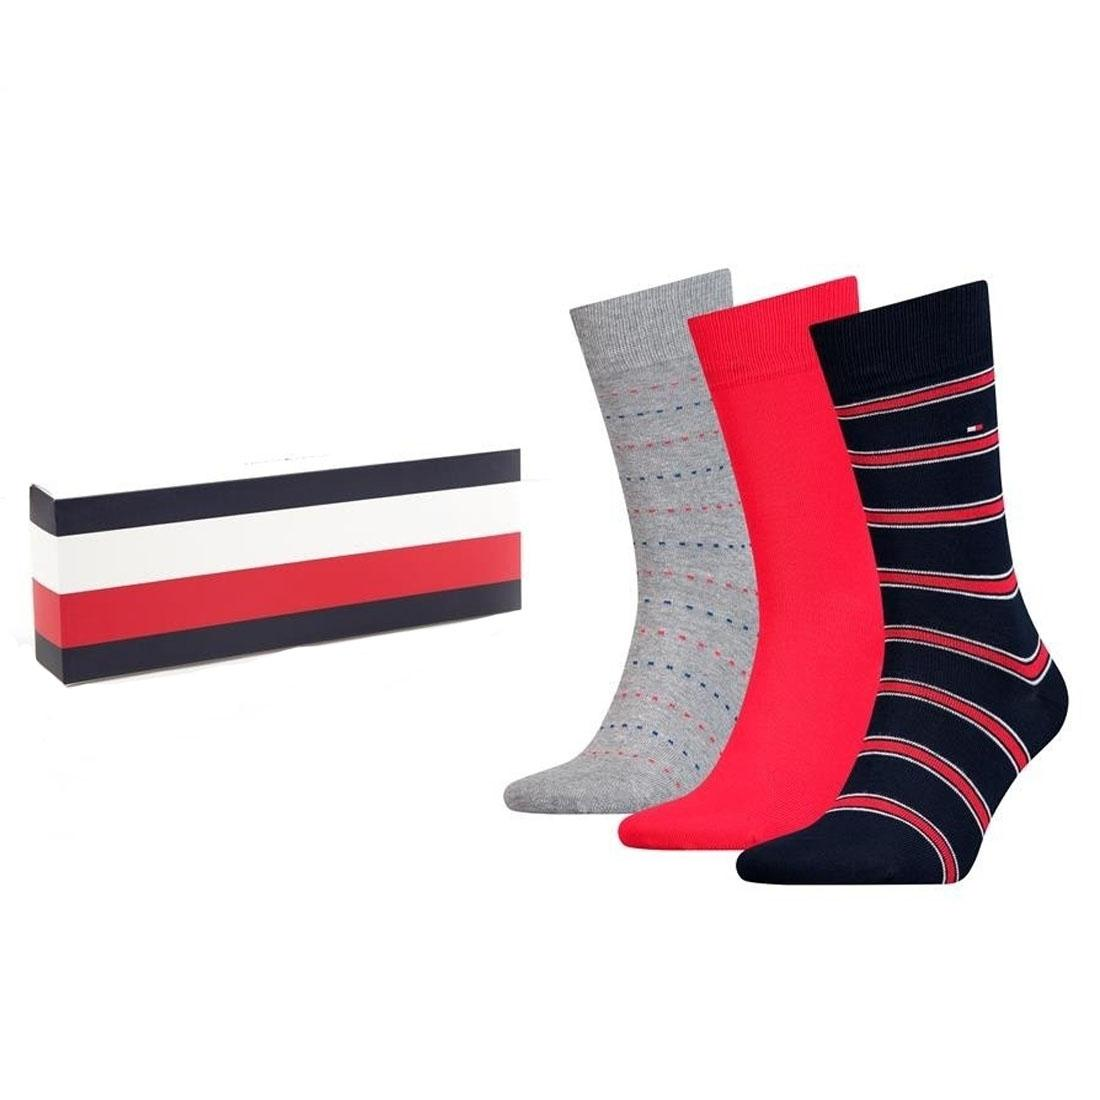 7 días de la semana Men/'s Crew Socks cómodo 7 pares Casual UK 6-11 Regalo Paquete